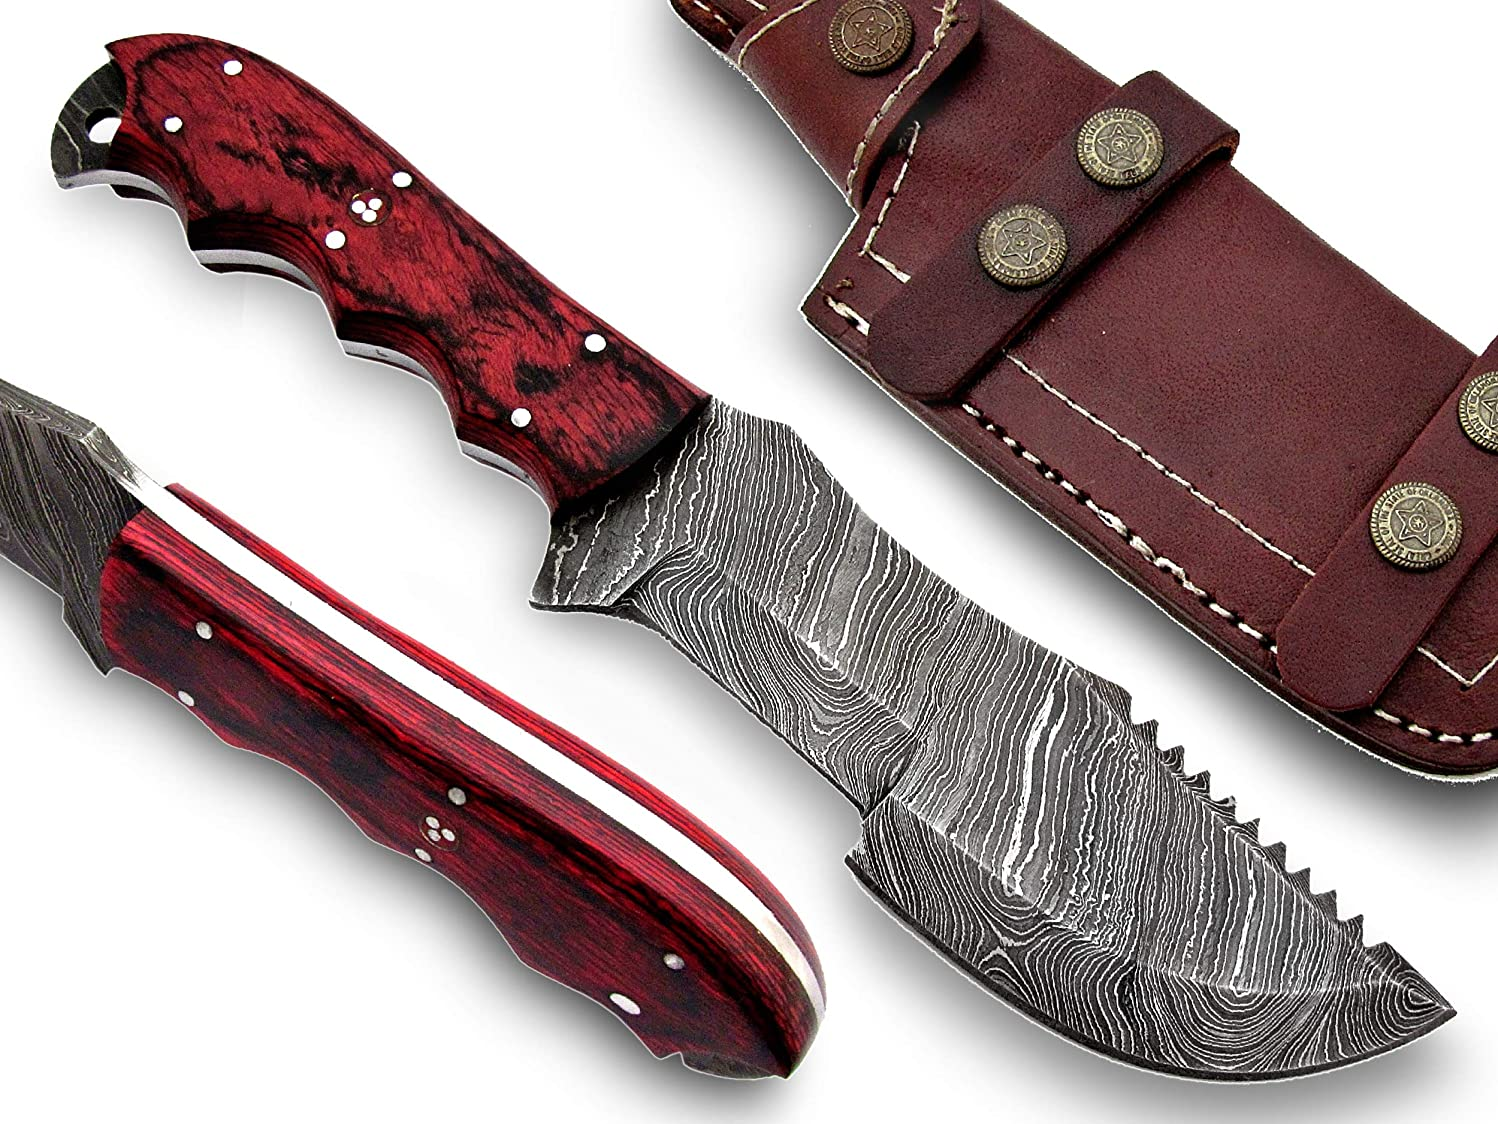 Poshland Tr-354, Handmade Damascus Steel 10 Inches Tactical Knife - Beautiful Canvas Micarta Handle